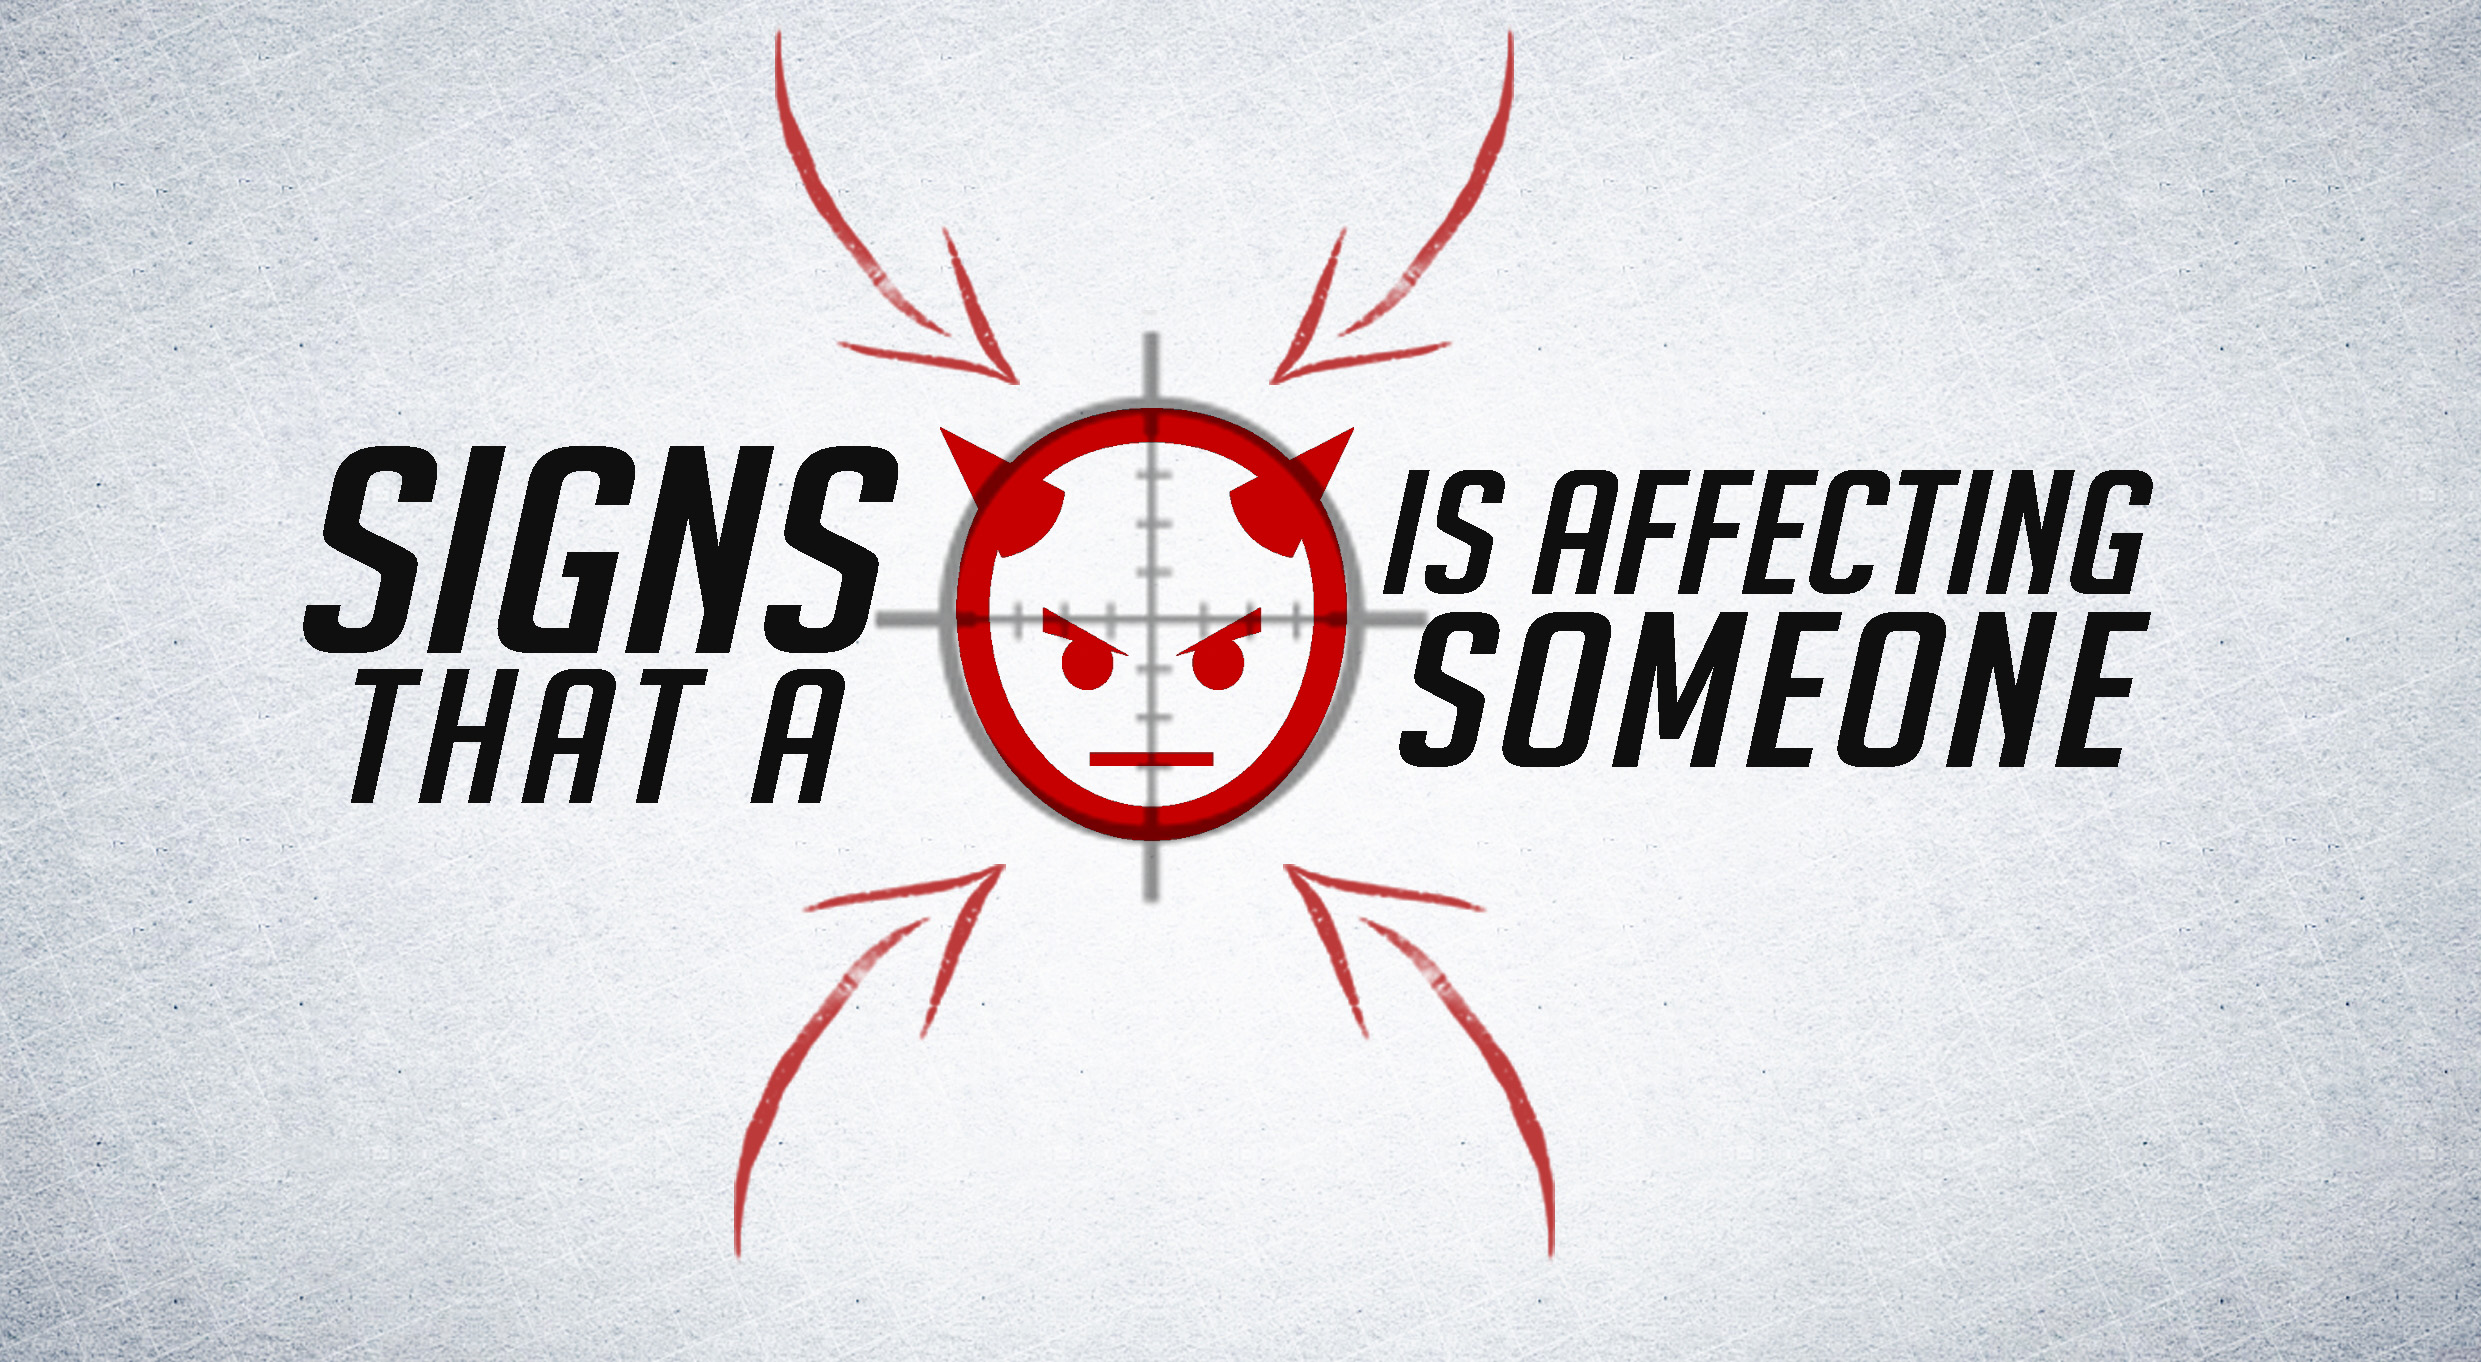 signs that a devil is affecting someone